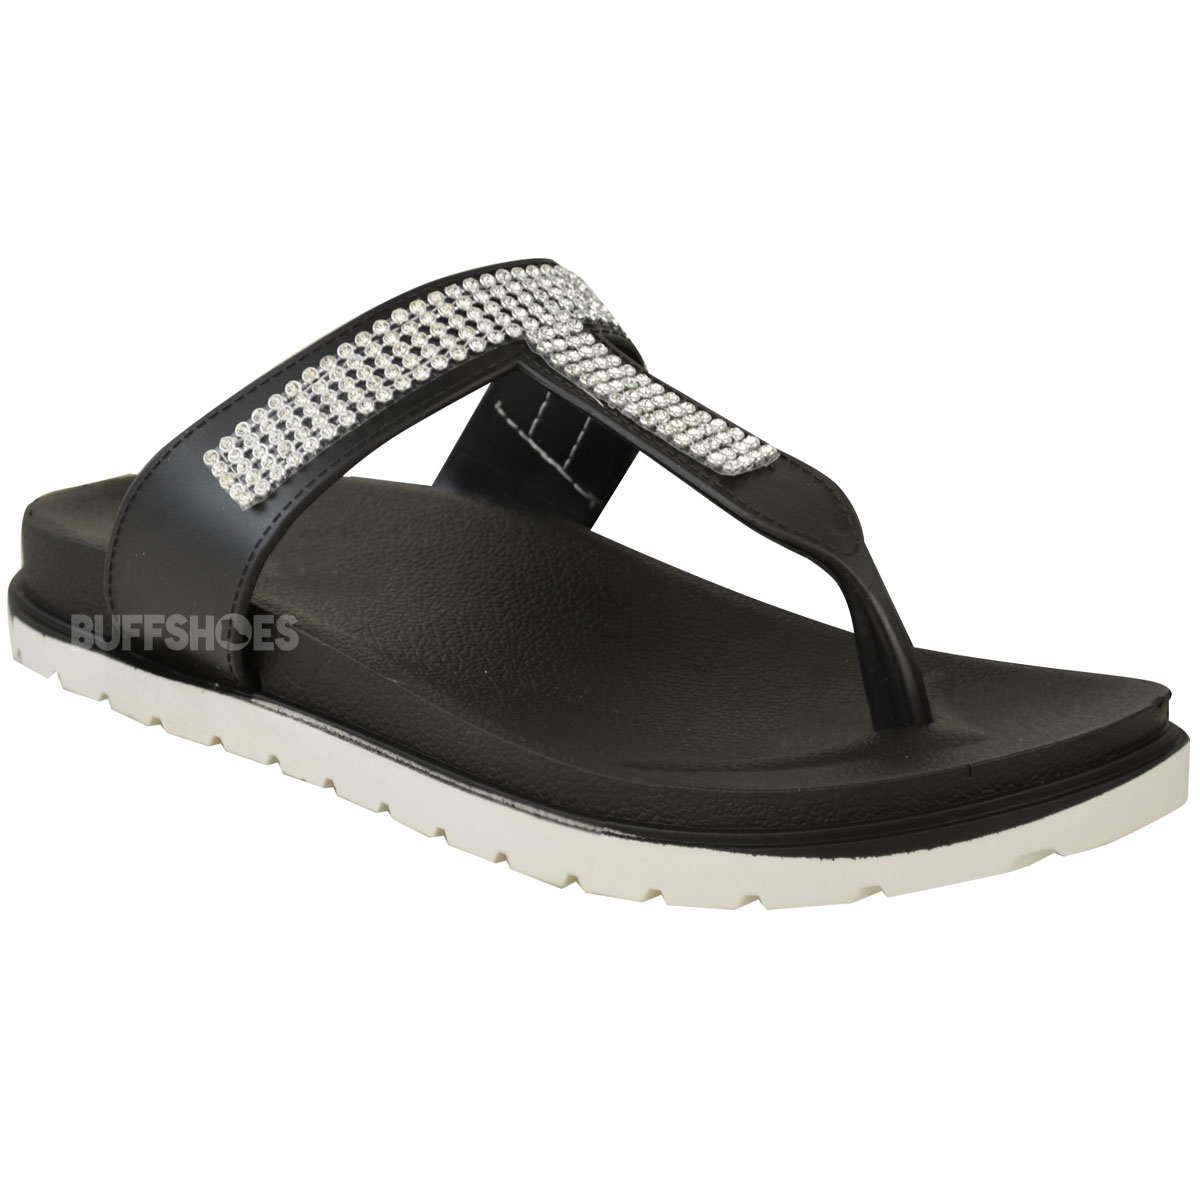 Womens-Ladies-Summer-Jelly-Sandals-Diamante-Wedge-Cushioned-Comfort-Shoes-Size thumbnail 3